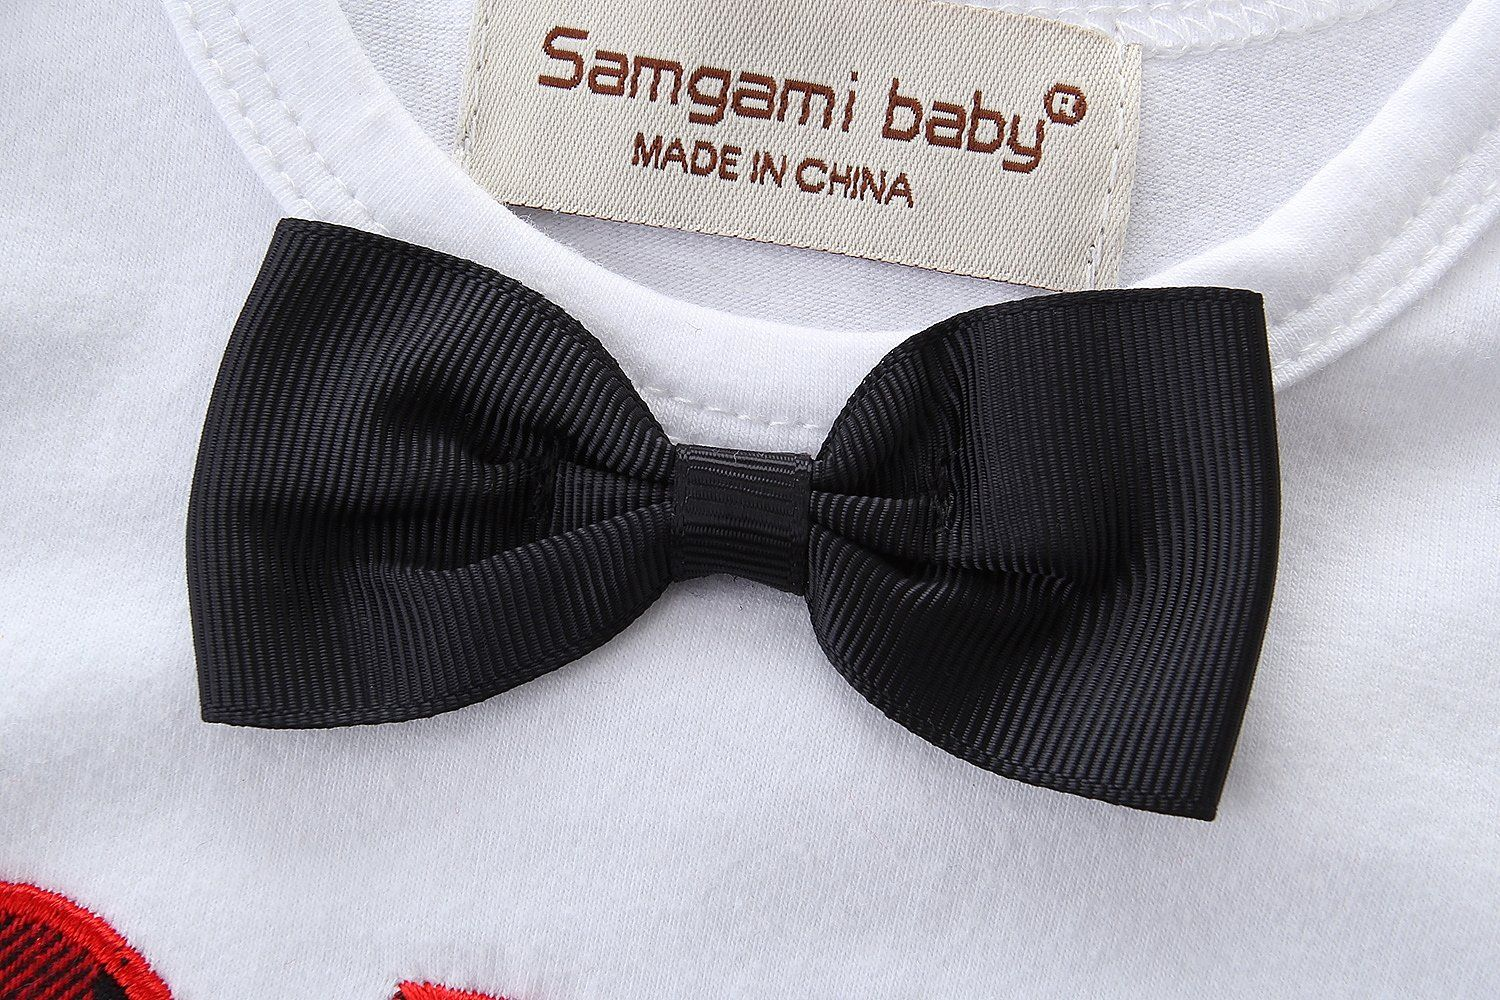 980f99c1 Newborn Baby Boy Clothing Set Bowtie Romper Suspenders Ripped Denim Pants  Outfits ** Check out